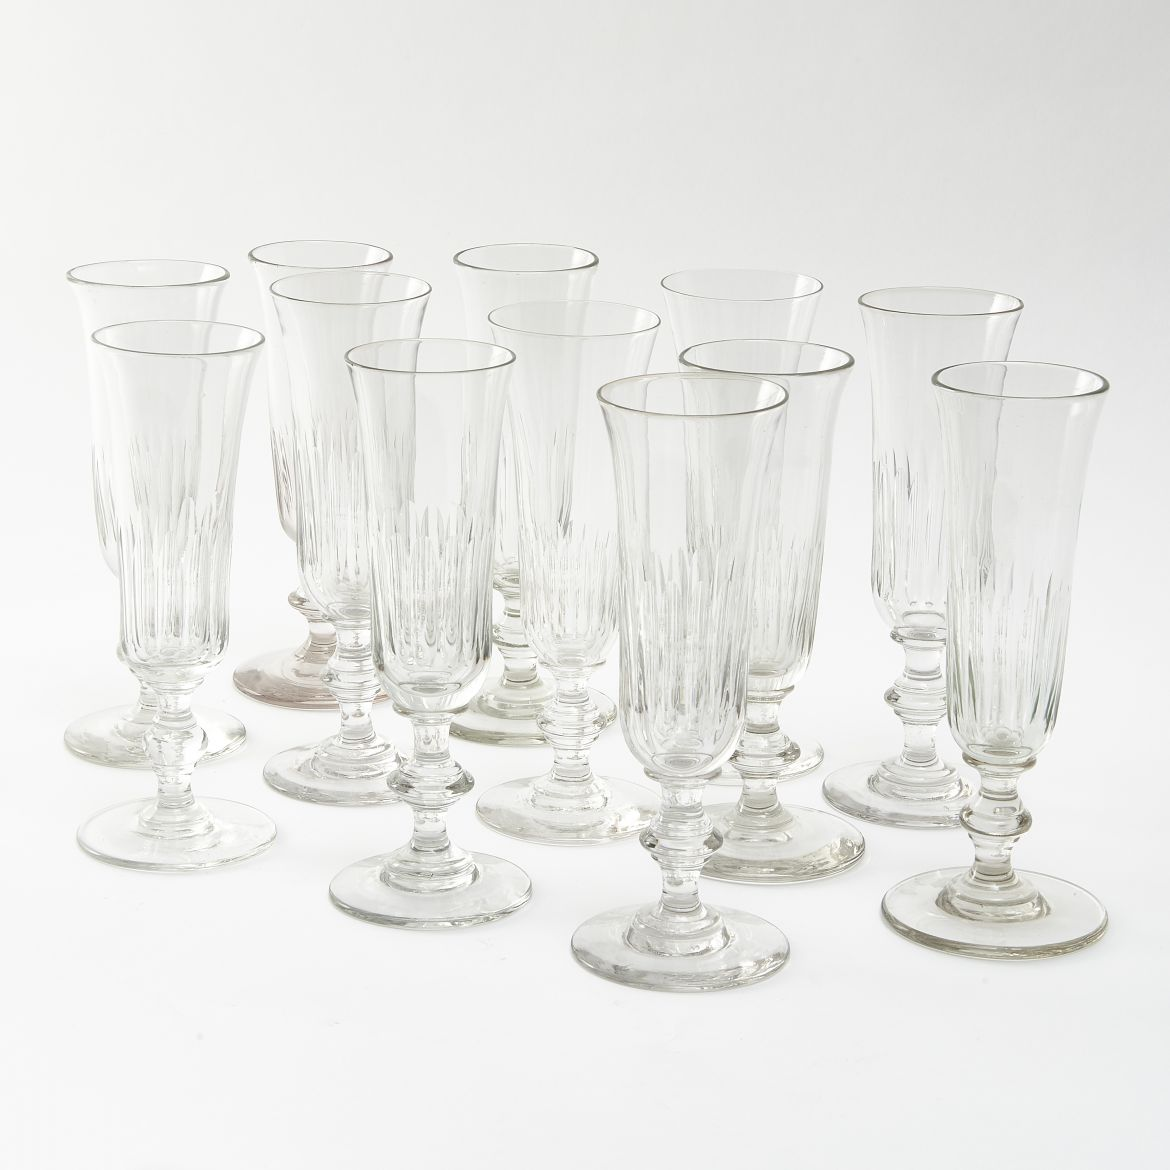 Twelve French Champagne Flutes